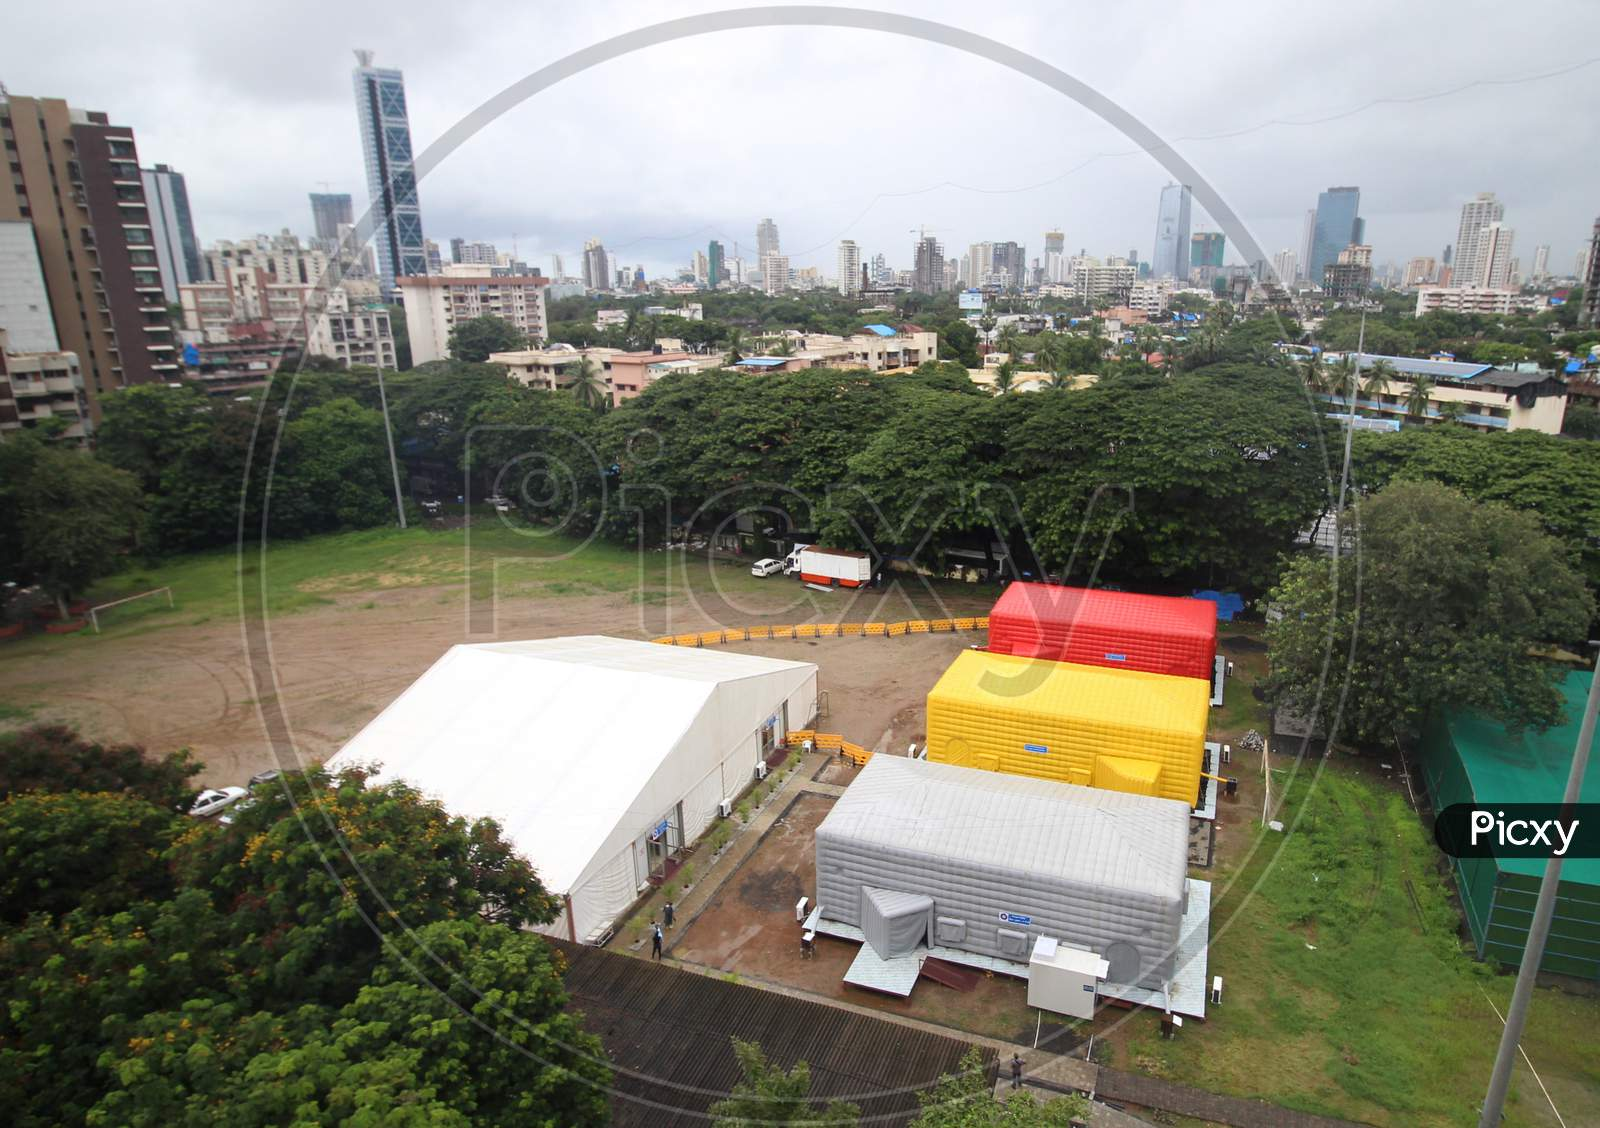 A general view of a temporary facility created to facilitate cancer patients diagnosed with coronavirus disease (COVID-19) in Mumbai, India on July 30, 2020.